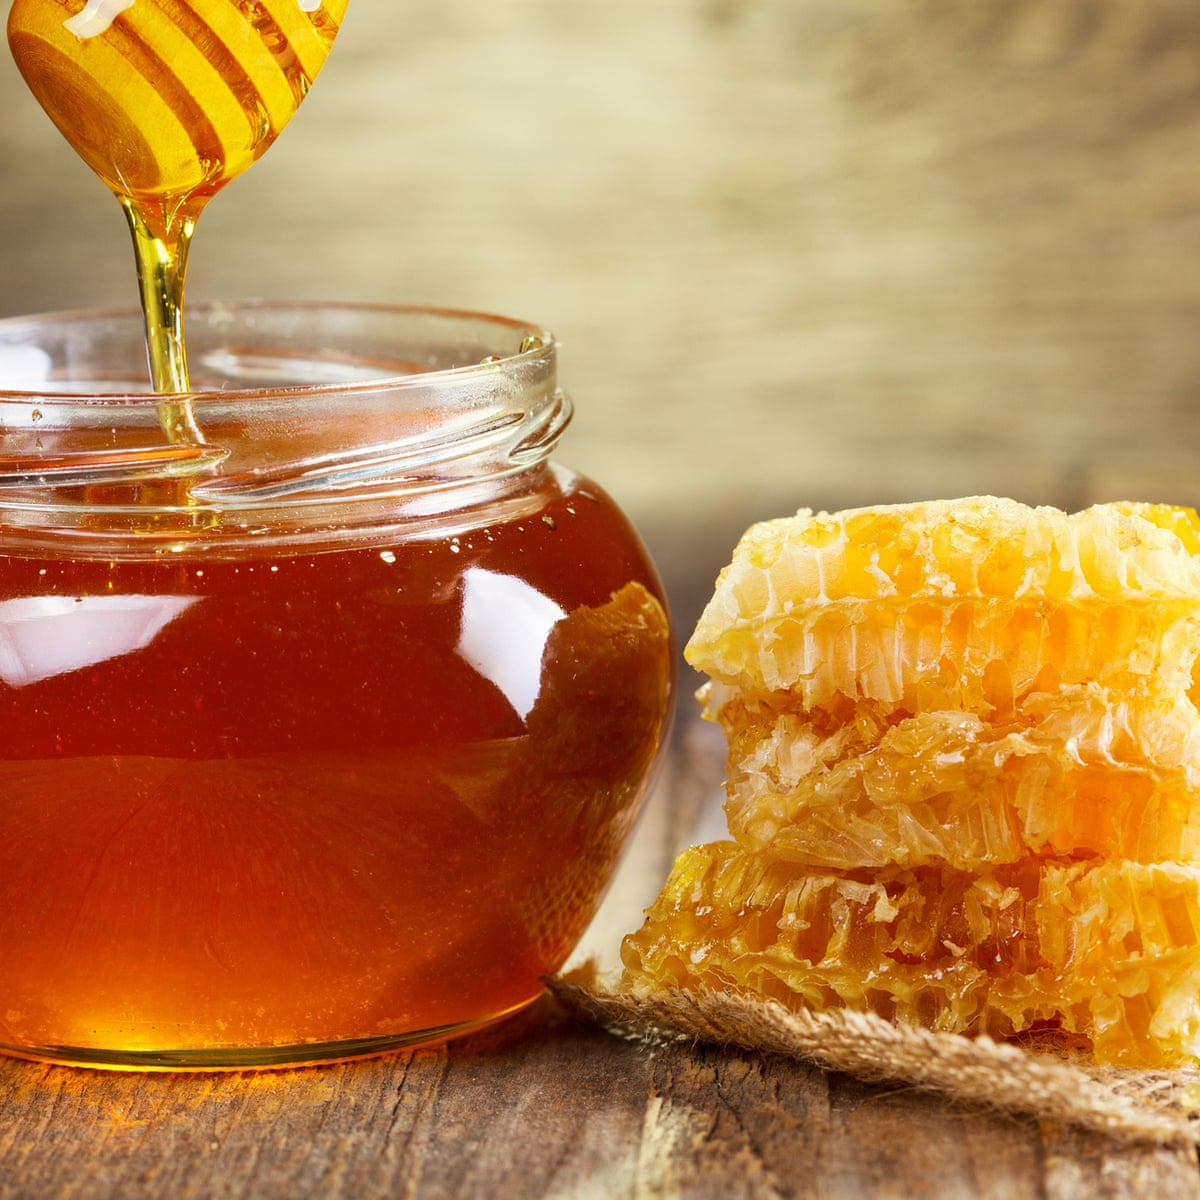 Honey can treat colds and flu-like illnesses